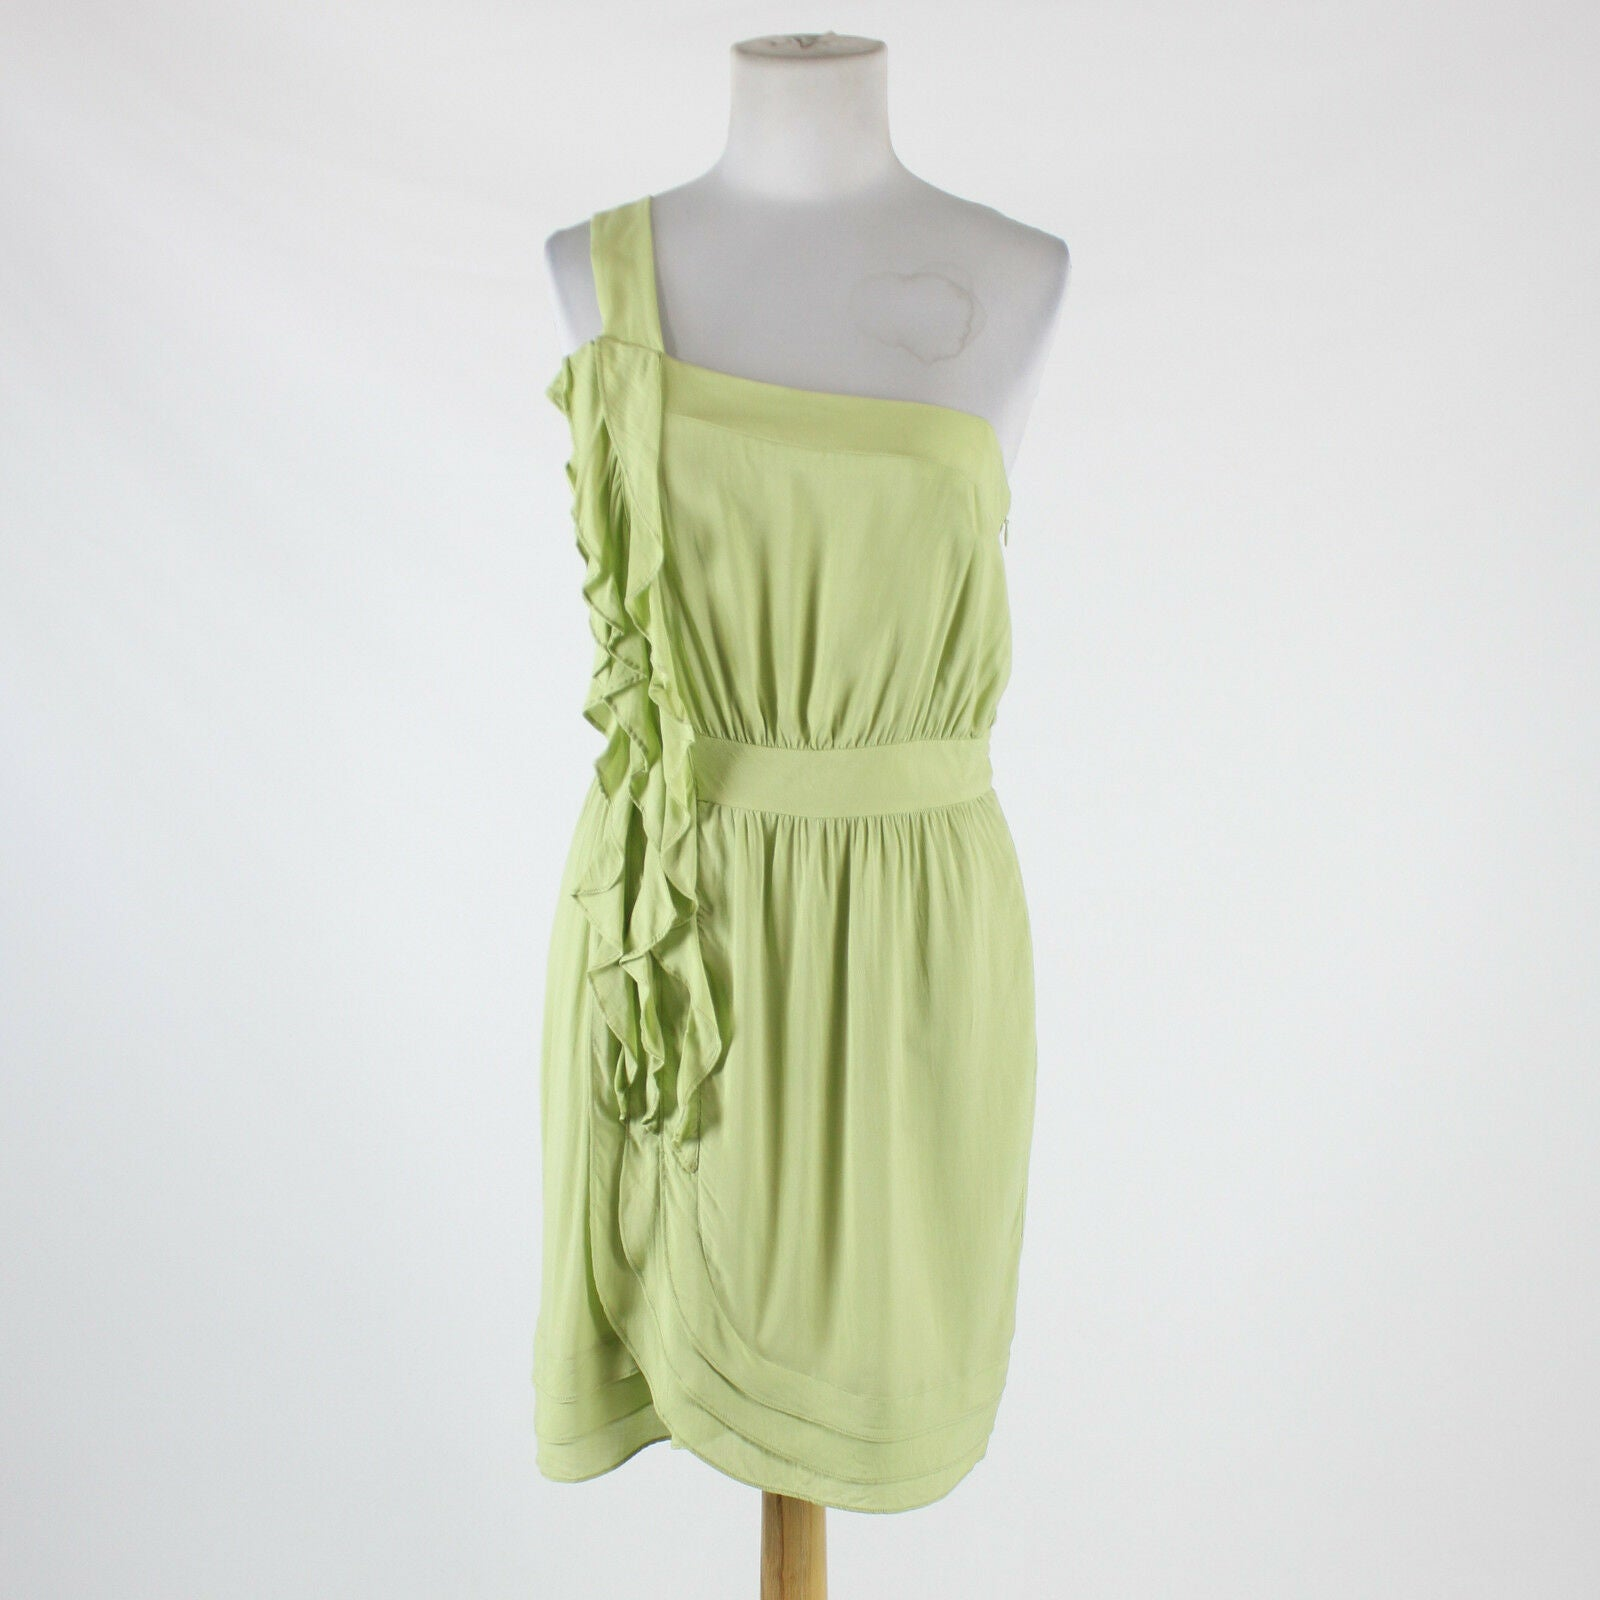 Light green rayon BCBGENERATION one shoulder above knee ruffled trim dress 8-Newish